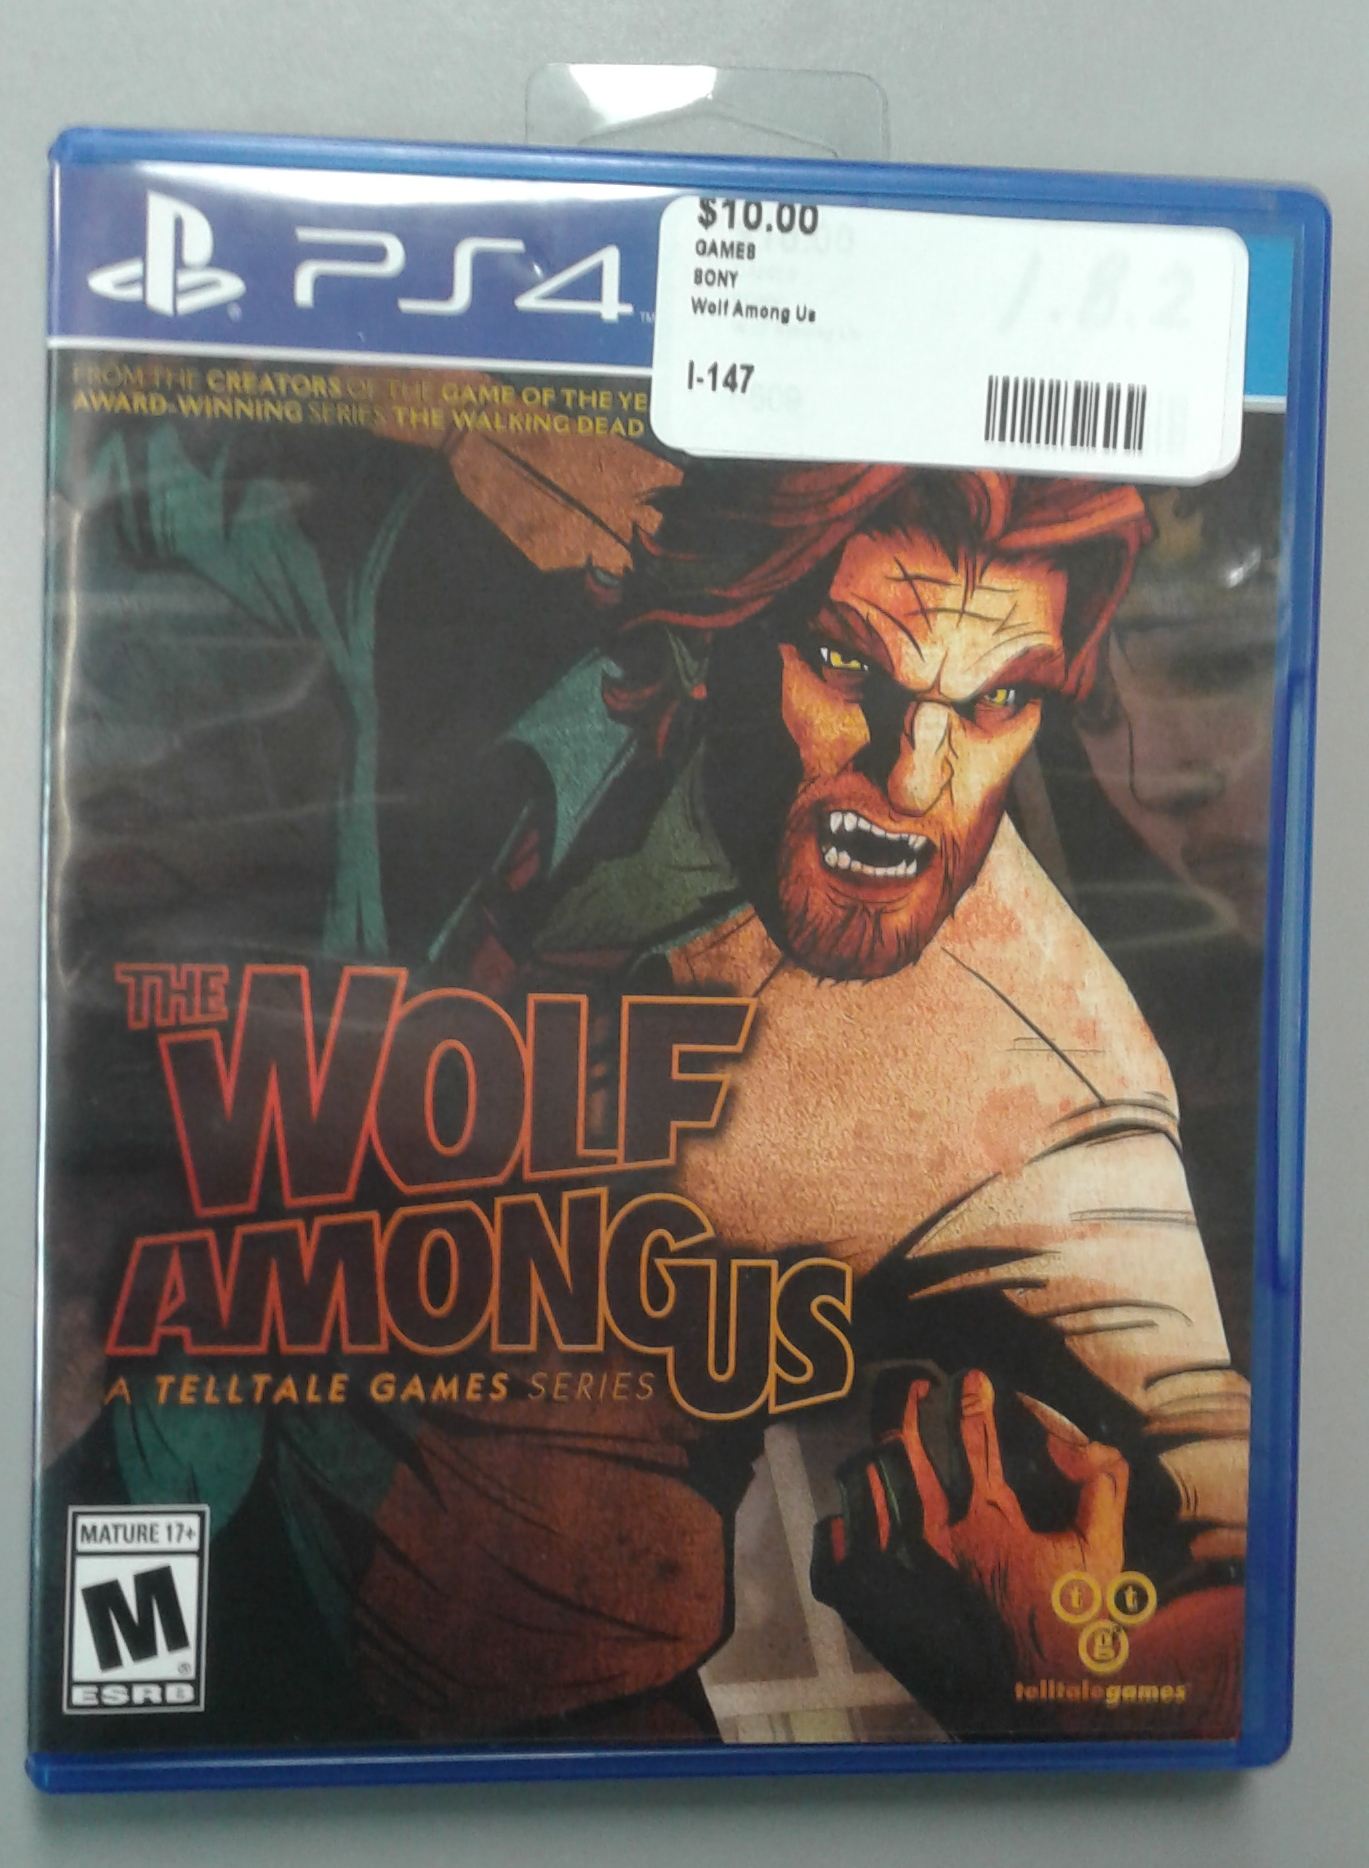 The wolf among us for Ps4